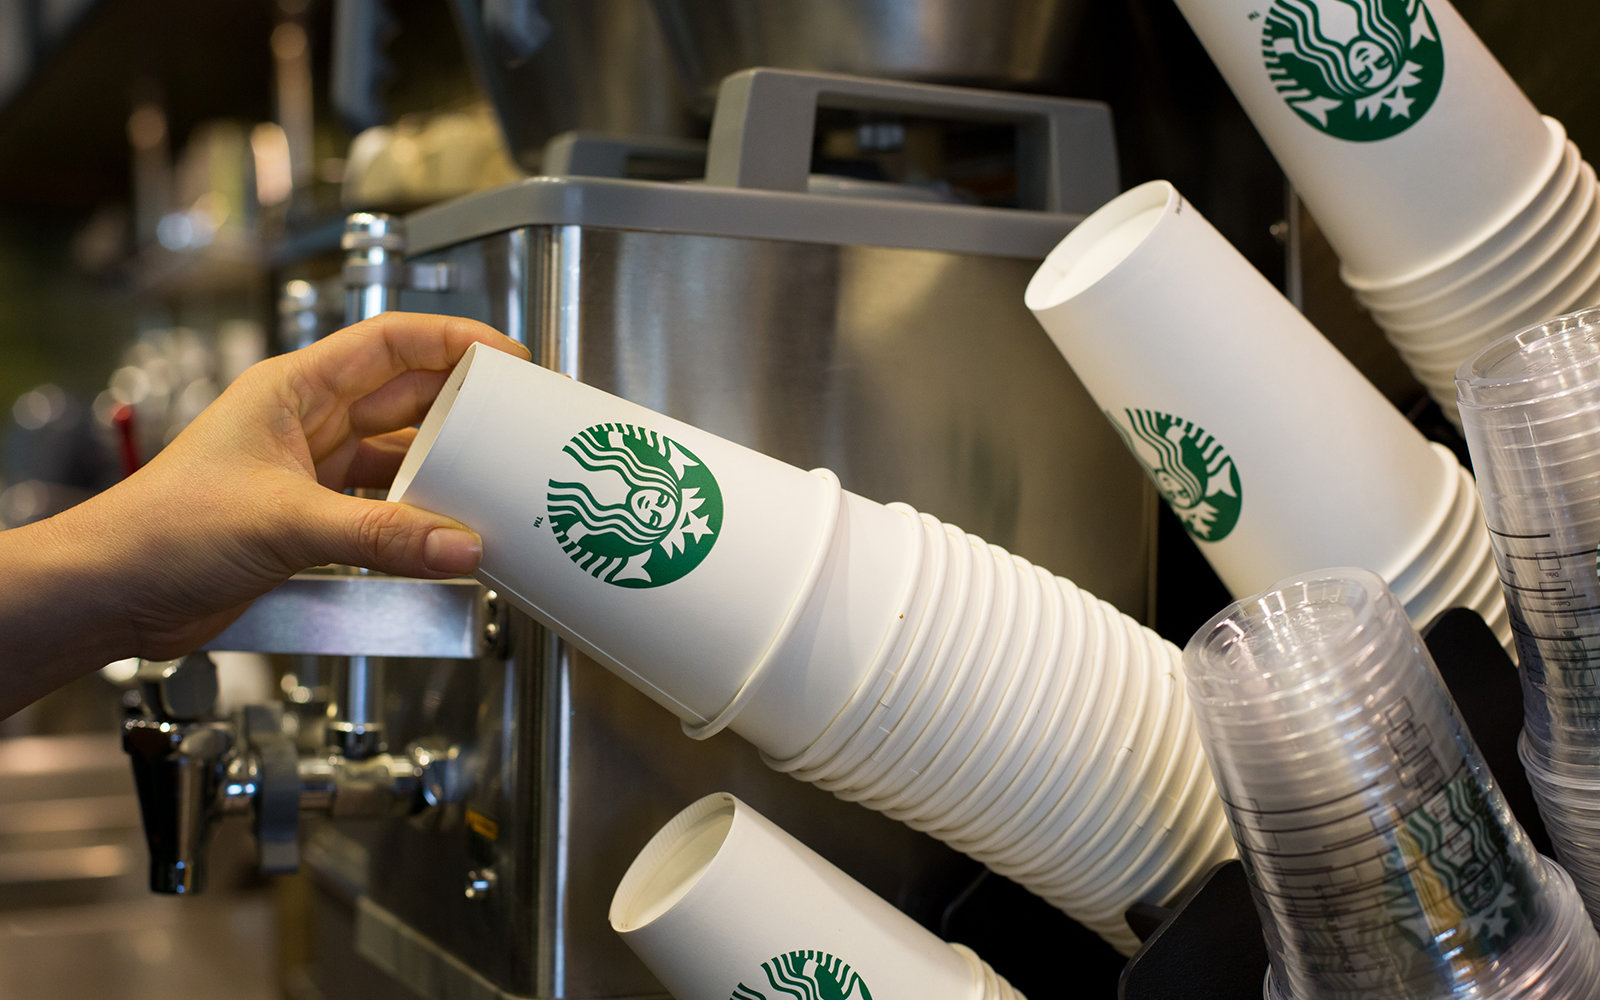 This is the real reason why Starbucks uses Tall, Grande and Venti